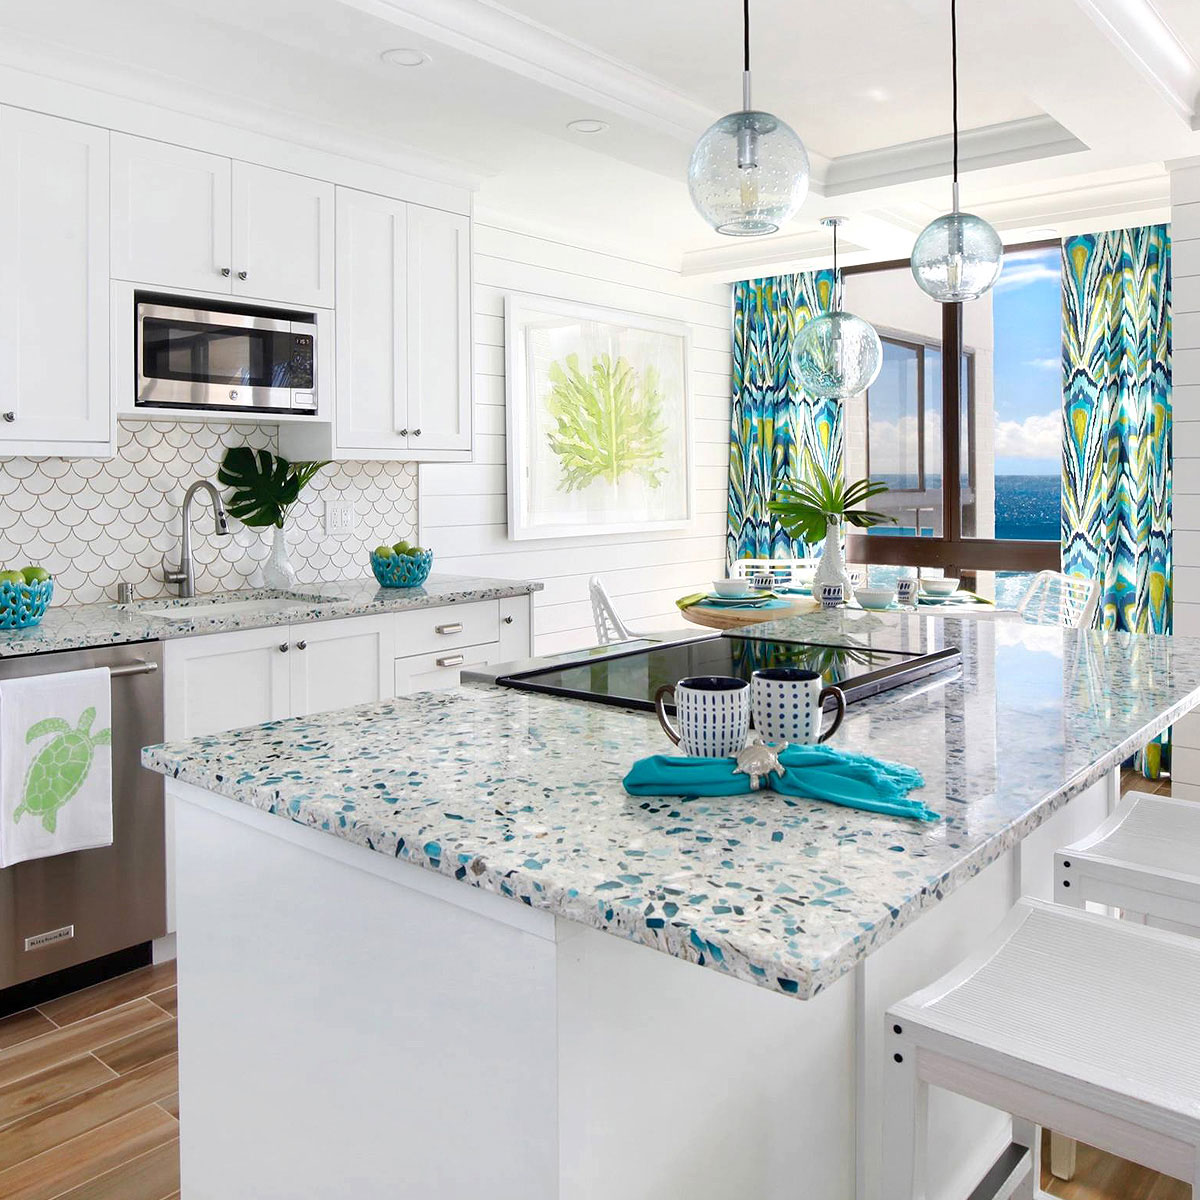 37 Recycled Gl Countertop Ideas Designs Tips Advice